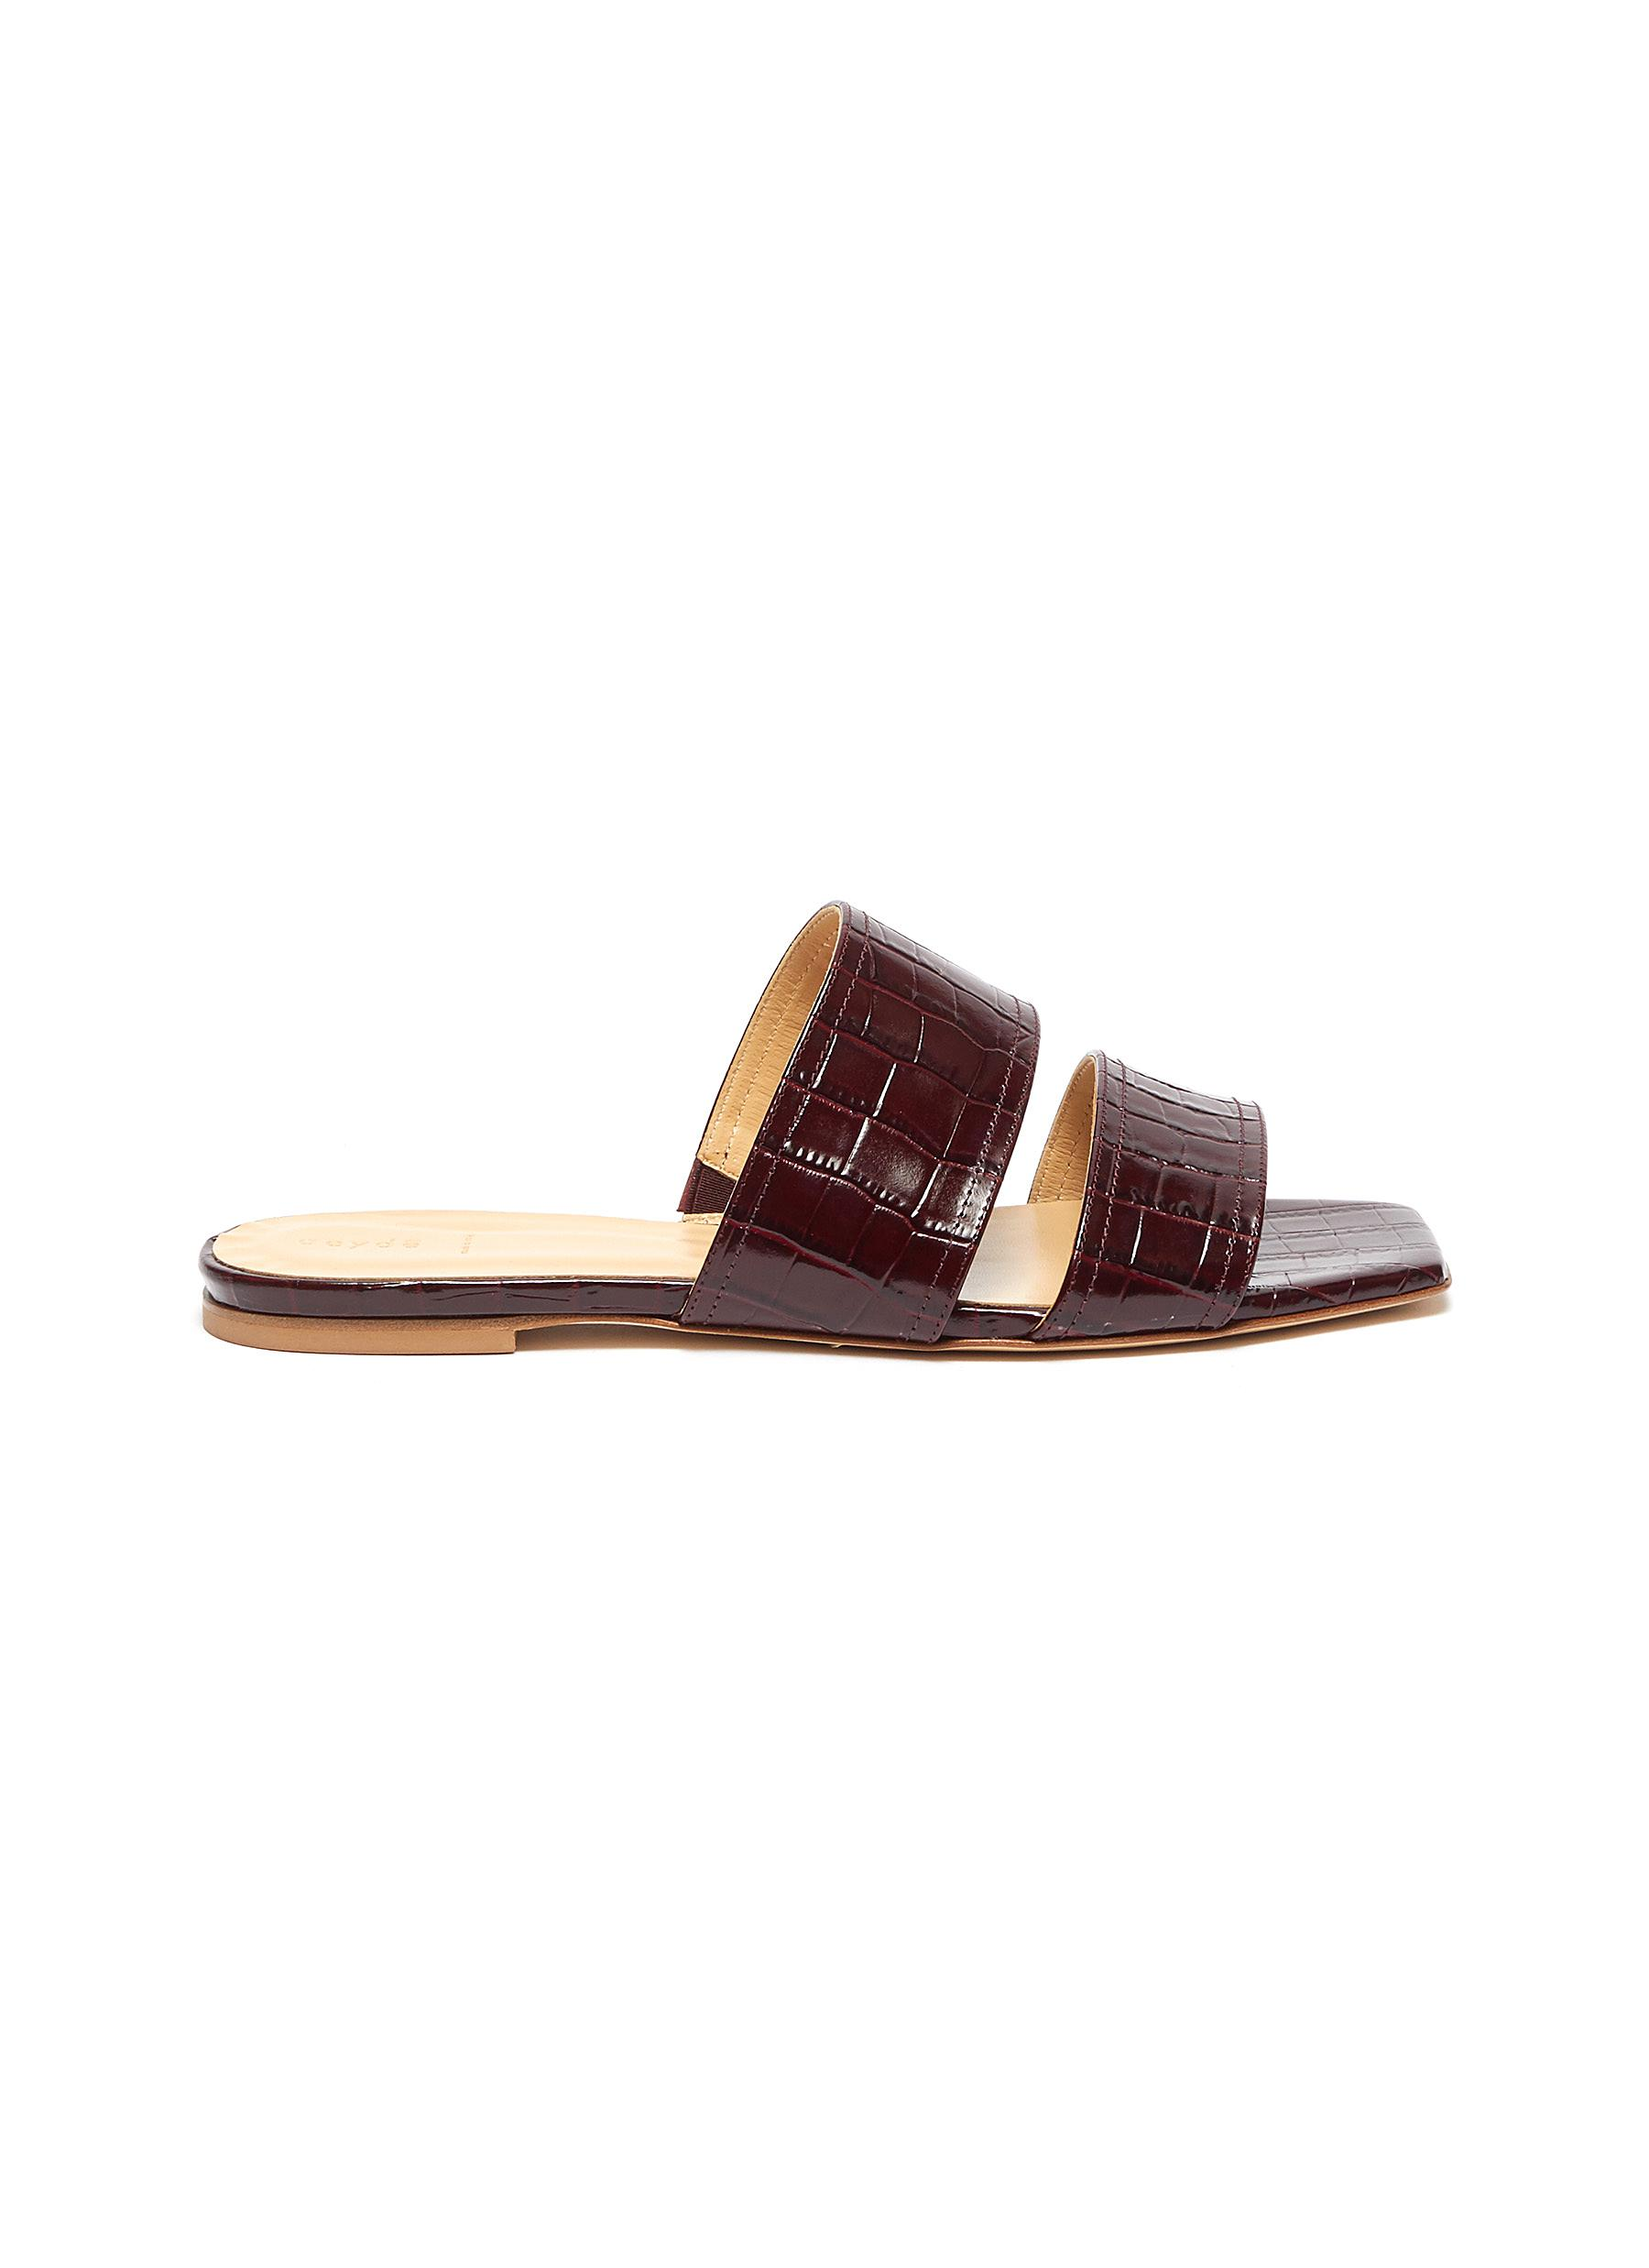 Mattea croc embossed leather slide sandals by Aeyde